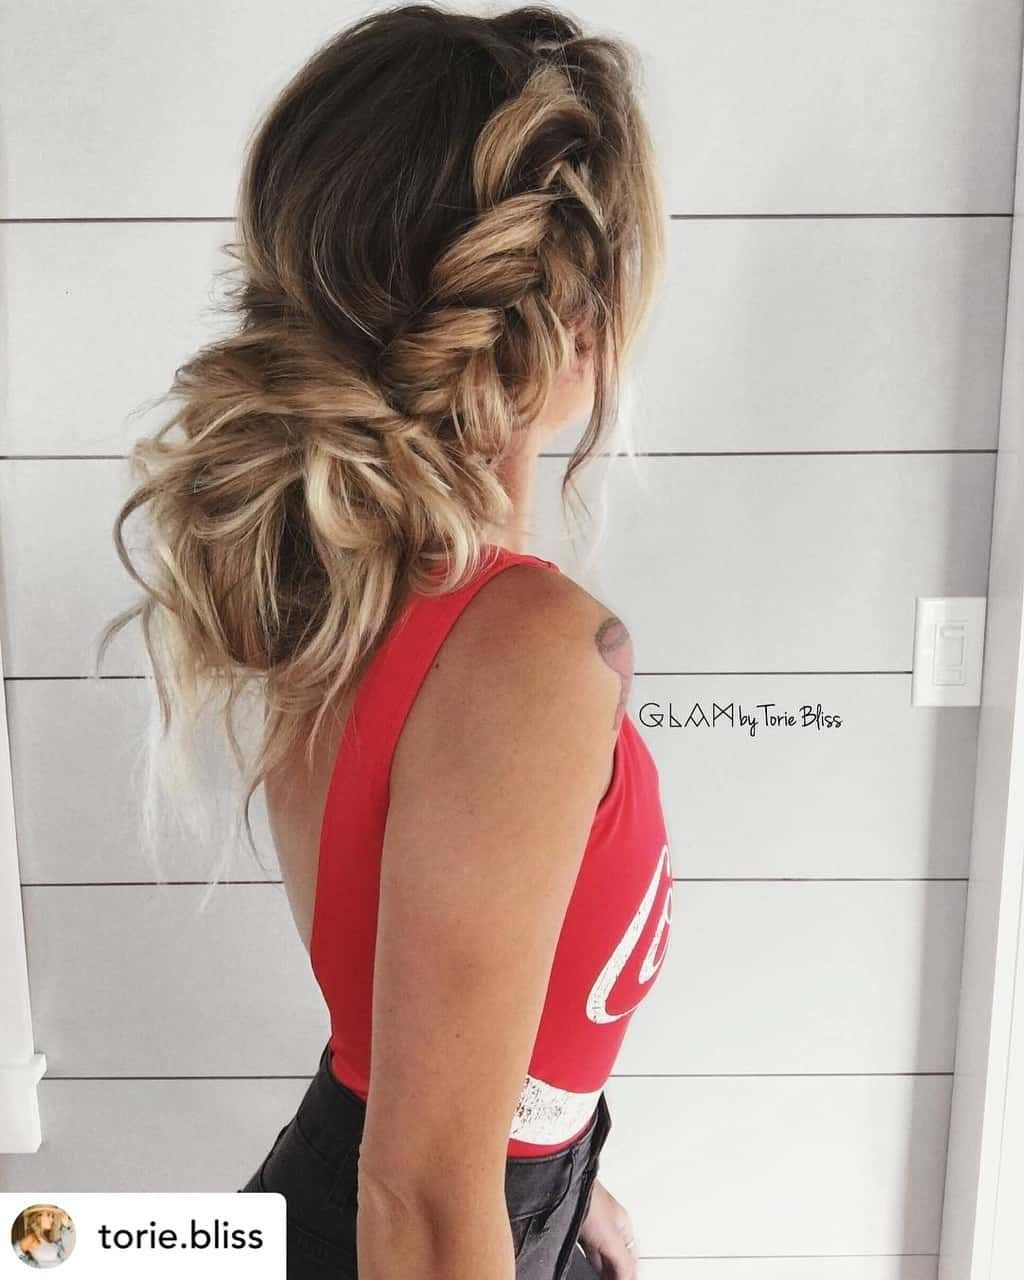 10 Ridiculously Easy Hairstyles For School 2020 Tutorials Included Long Hair Styles Easy Hairstyles Hair Styles